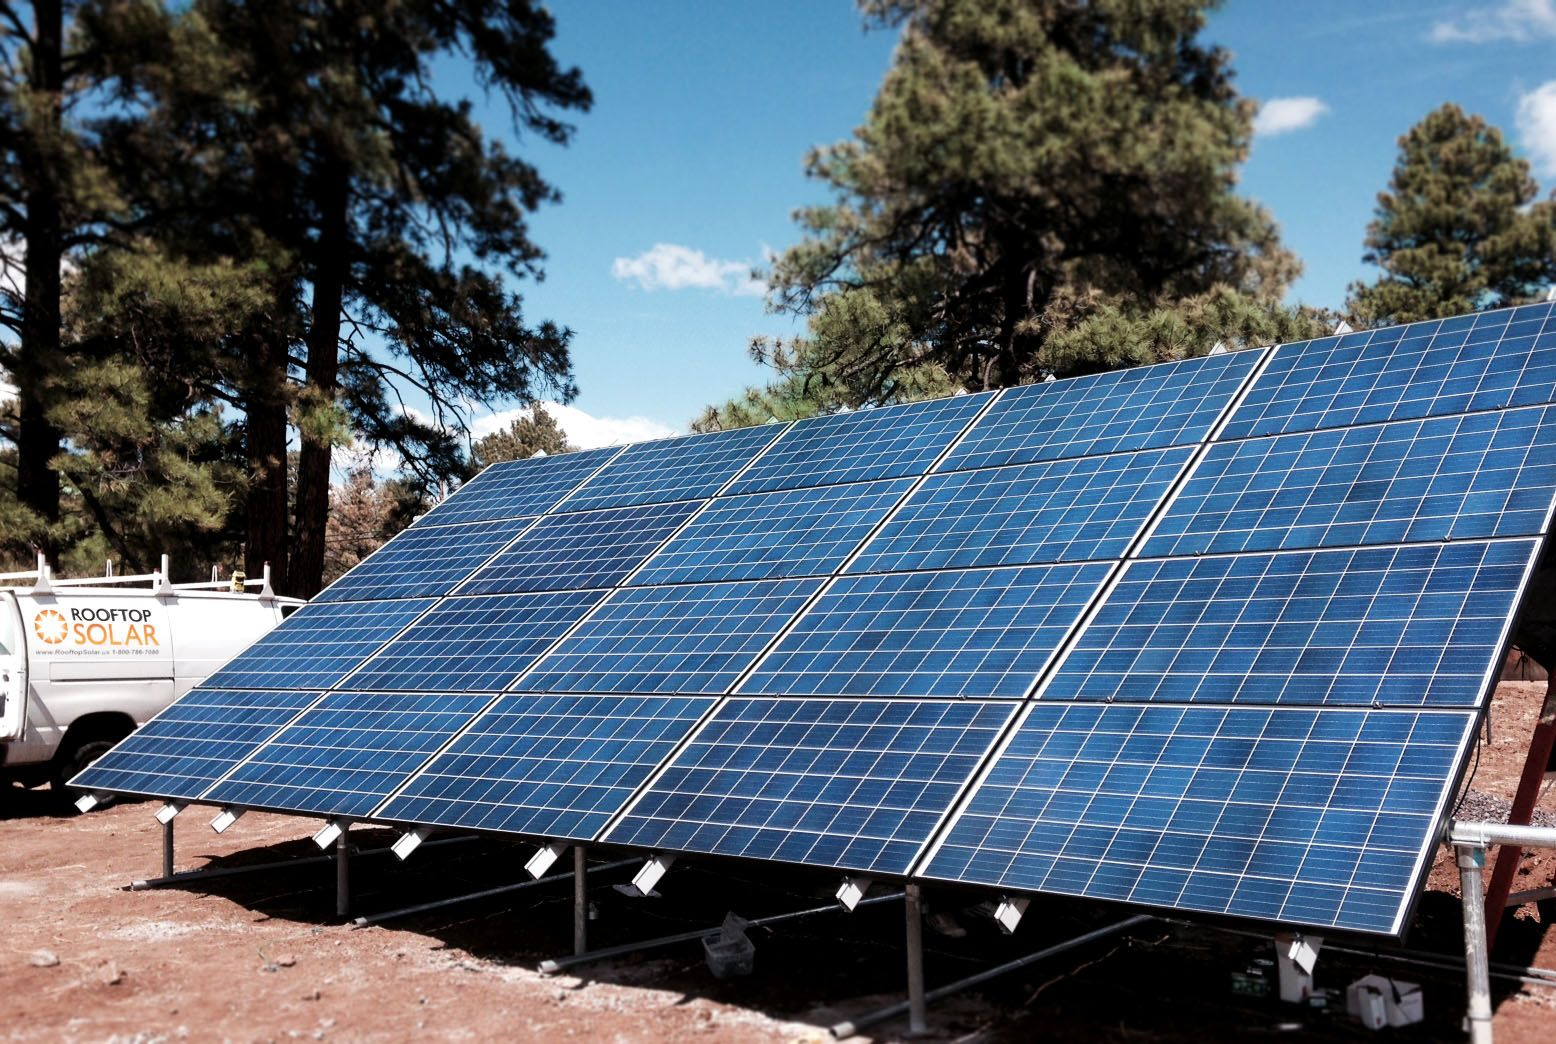 Ground Mount Solar Panels Installed At Outdoors Unlimited In Flagstaff Az Rooftop Solar Groundmount Solarpanels Solar Installation Solar Installation